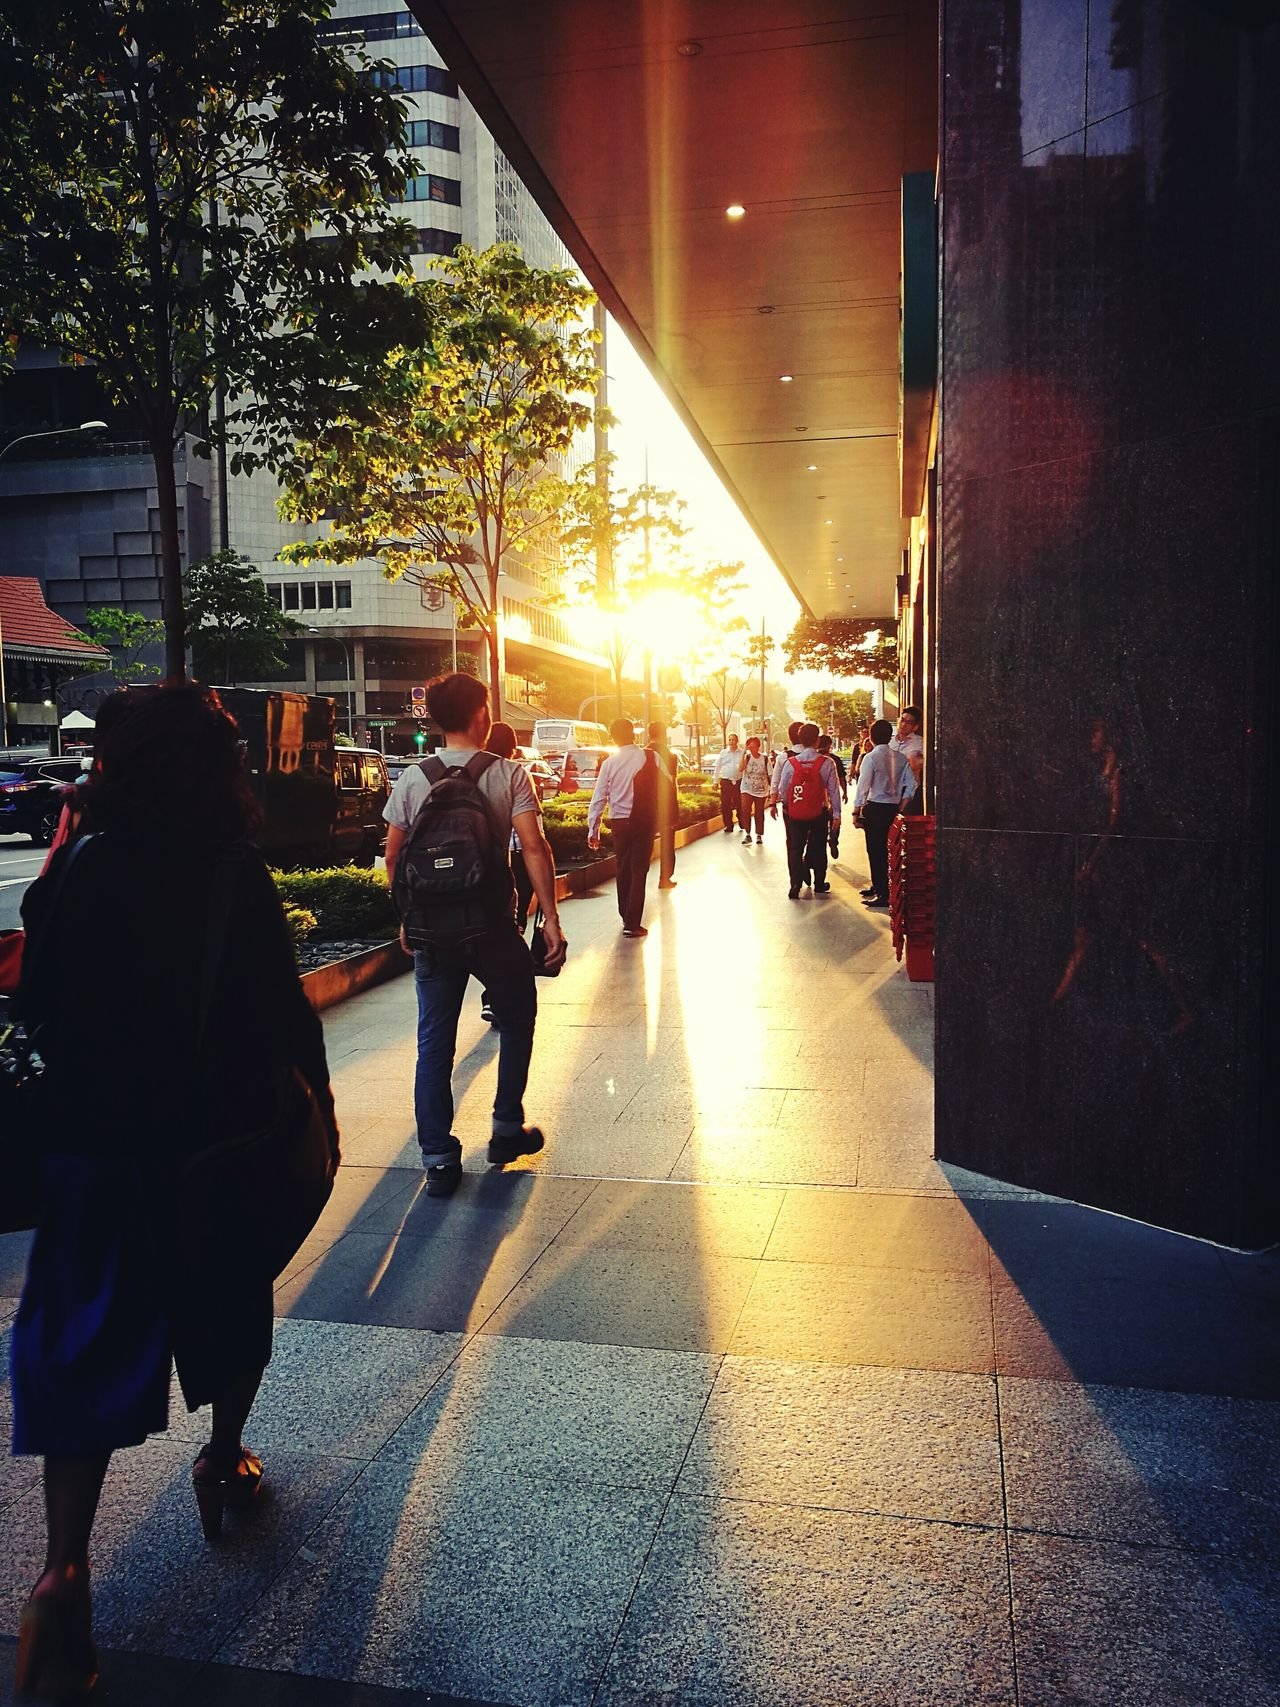 People Adult Men Women Sunset Adults Only Large Group Of People Outdoors Real People City Day Only Men Sky CBD Office Building NOMAD Sunset_collection Warm Walk This Way The Great Outdoors - 2017 EyeEm Awards